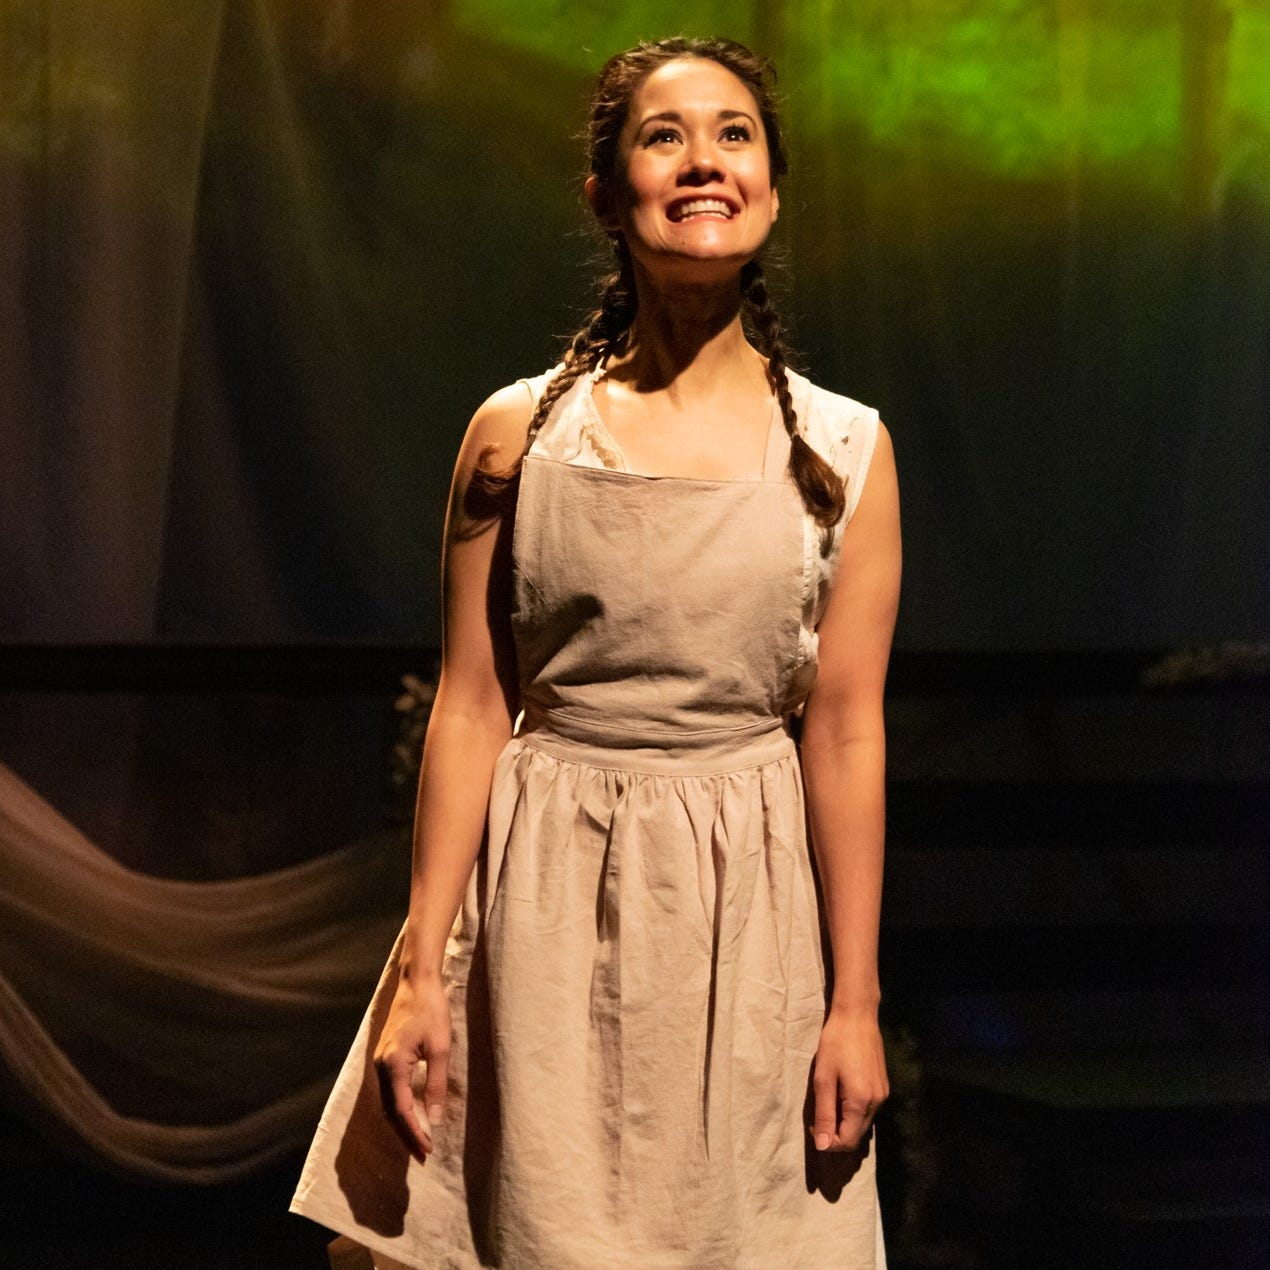 Pleasantville's Ali Ewoldt shines in 'Anne of Green Gables' Off-Broadway